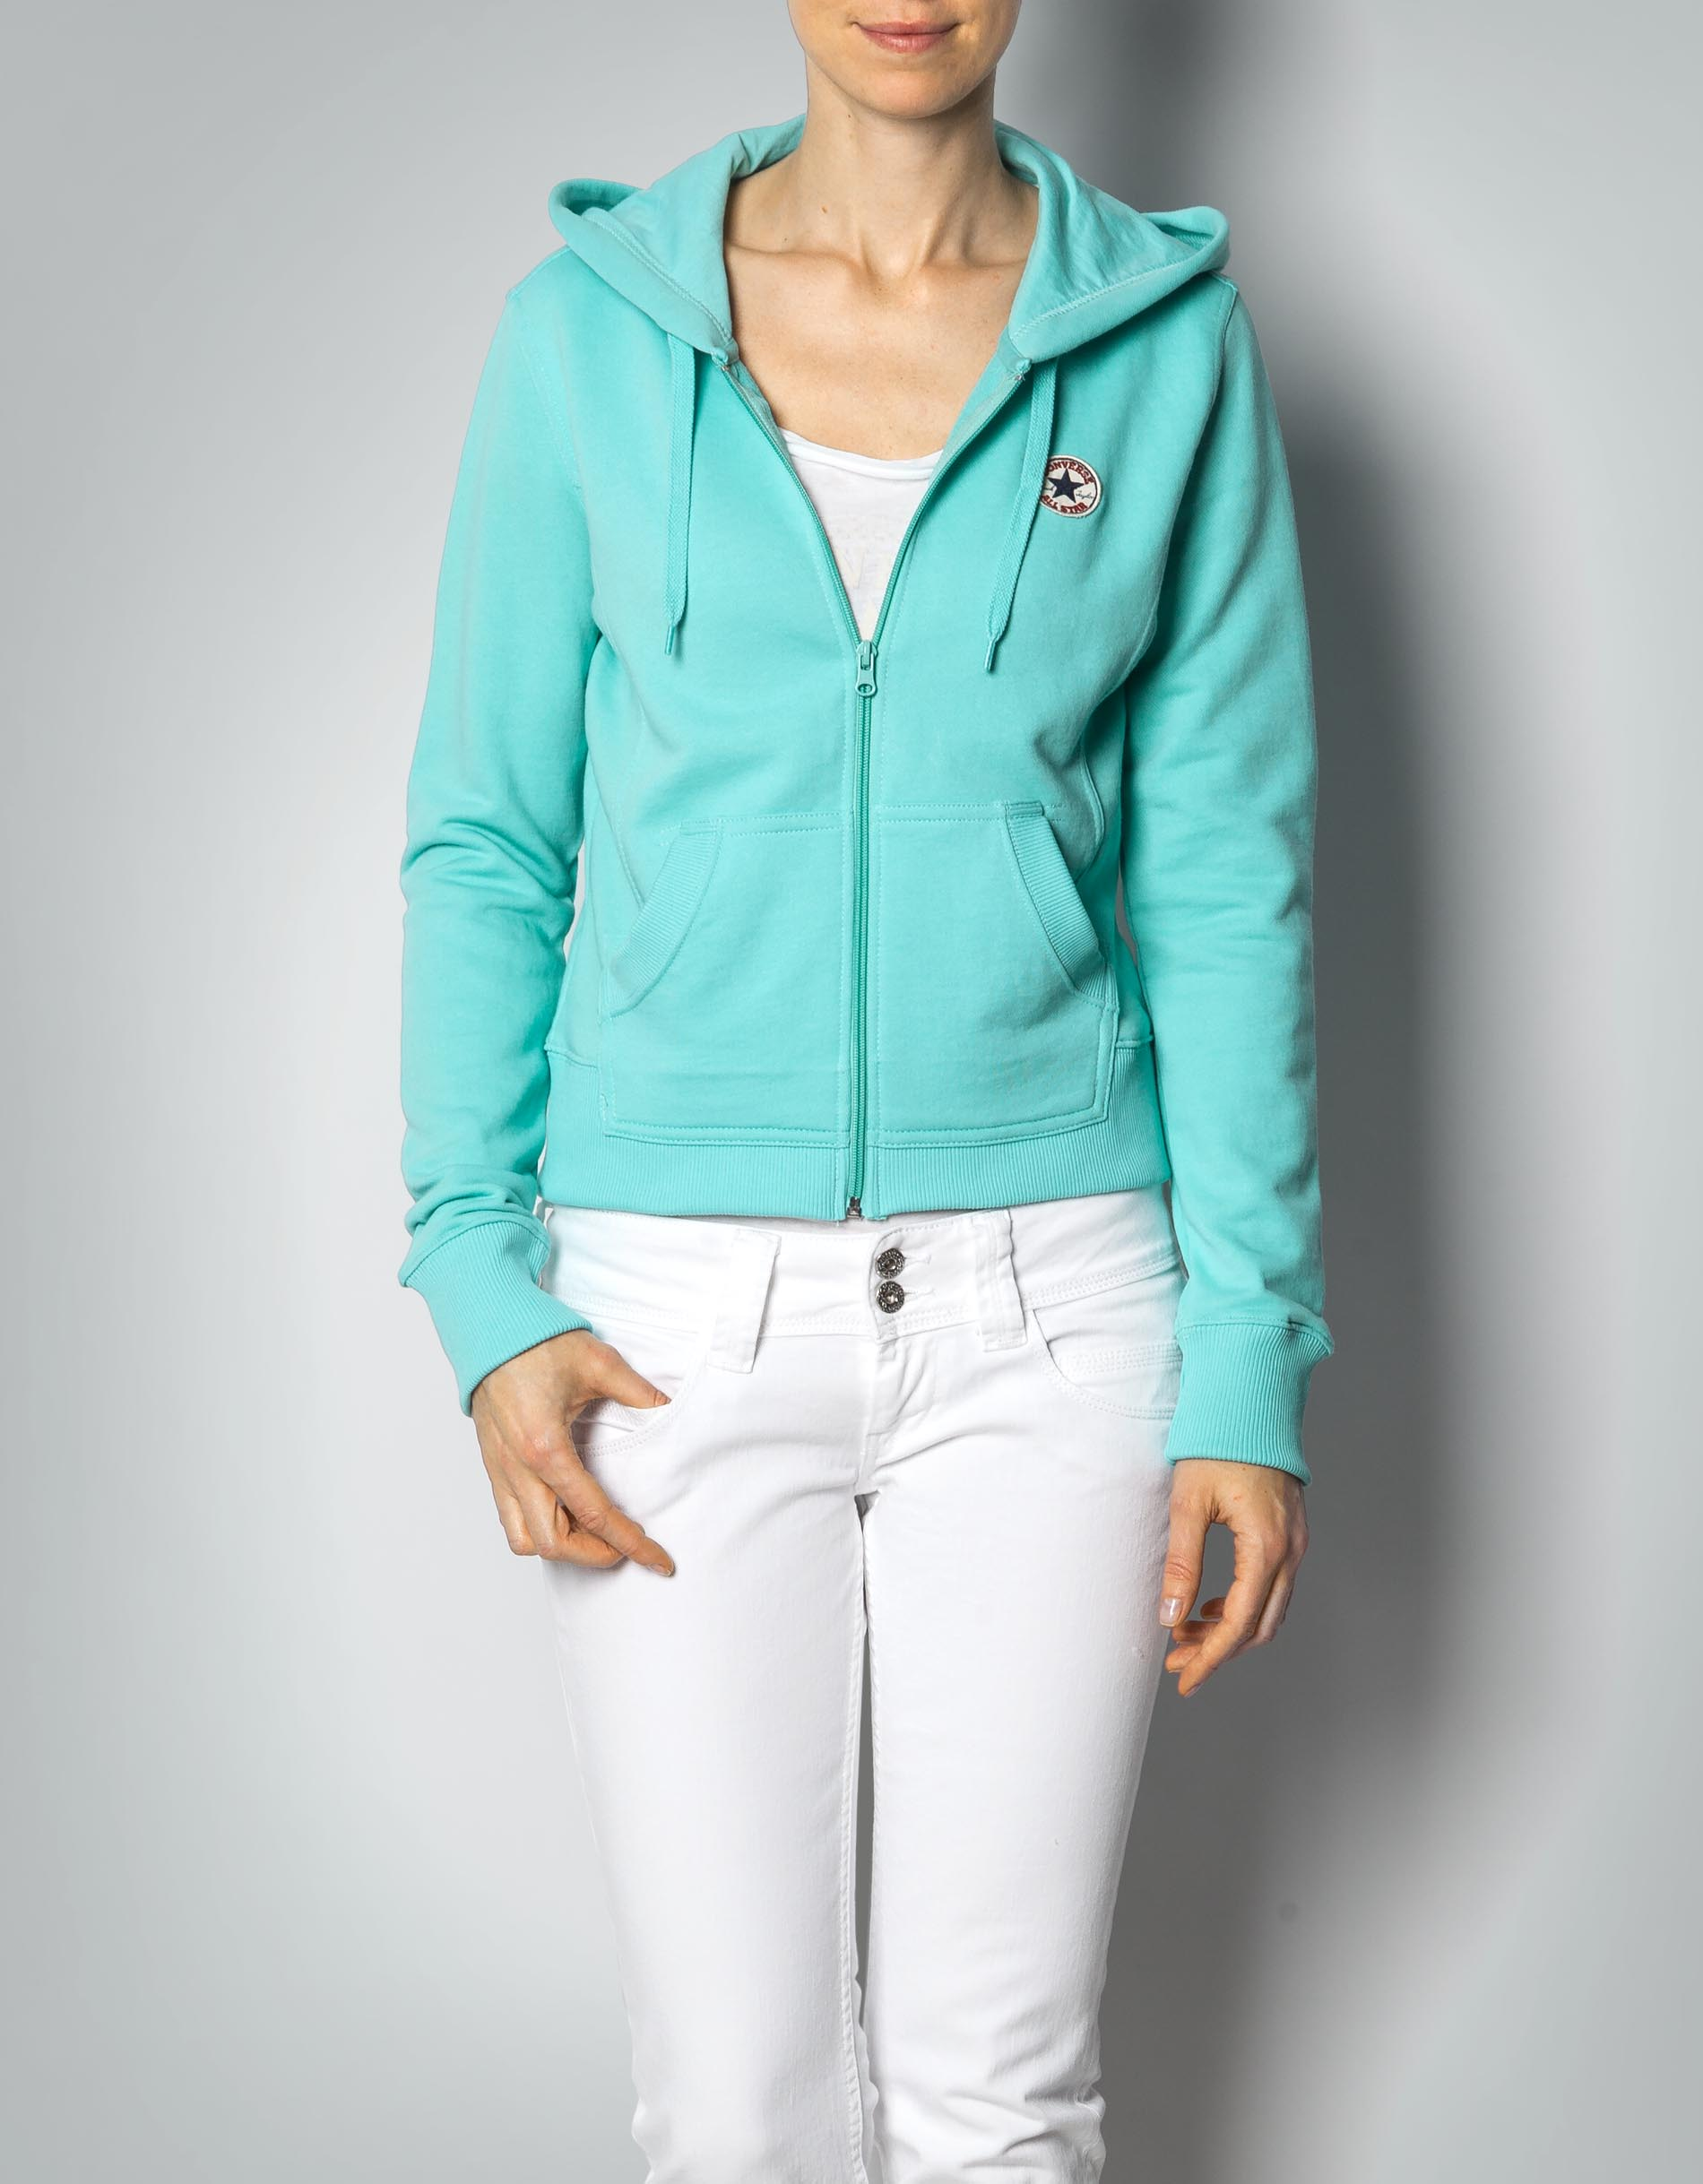 converse damen sweatjacke aqua sky mit kapuze empfohlen. Black Bedroom Furniture Sets. Home Design Ideas